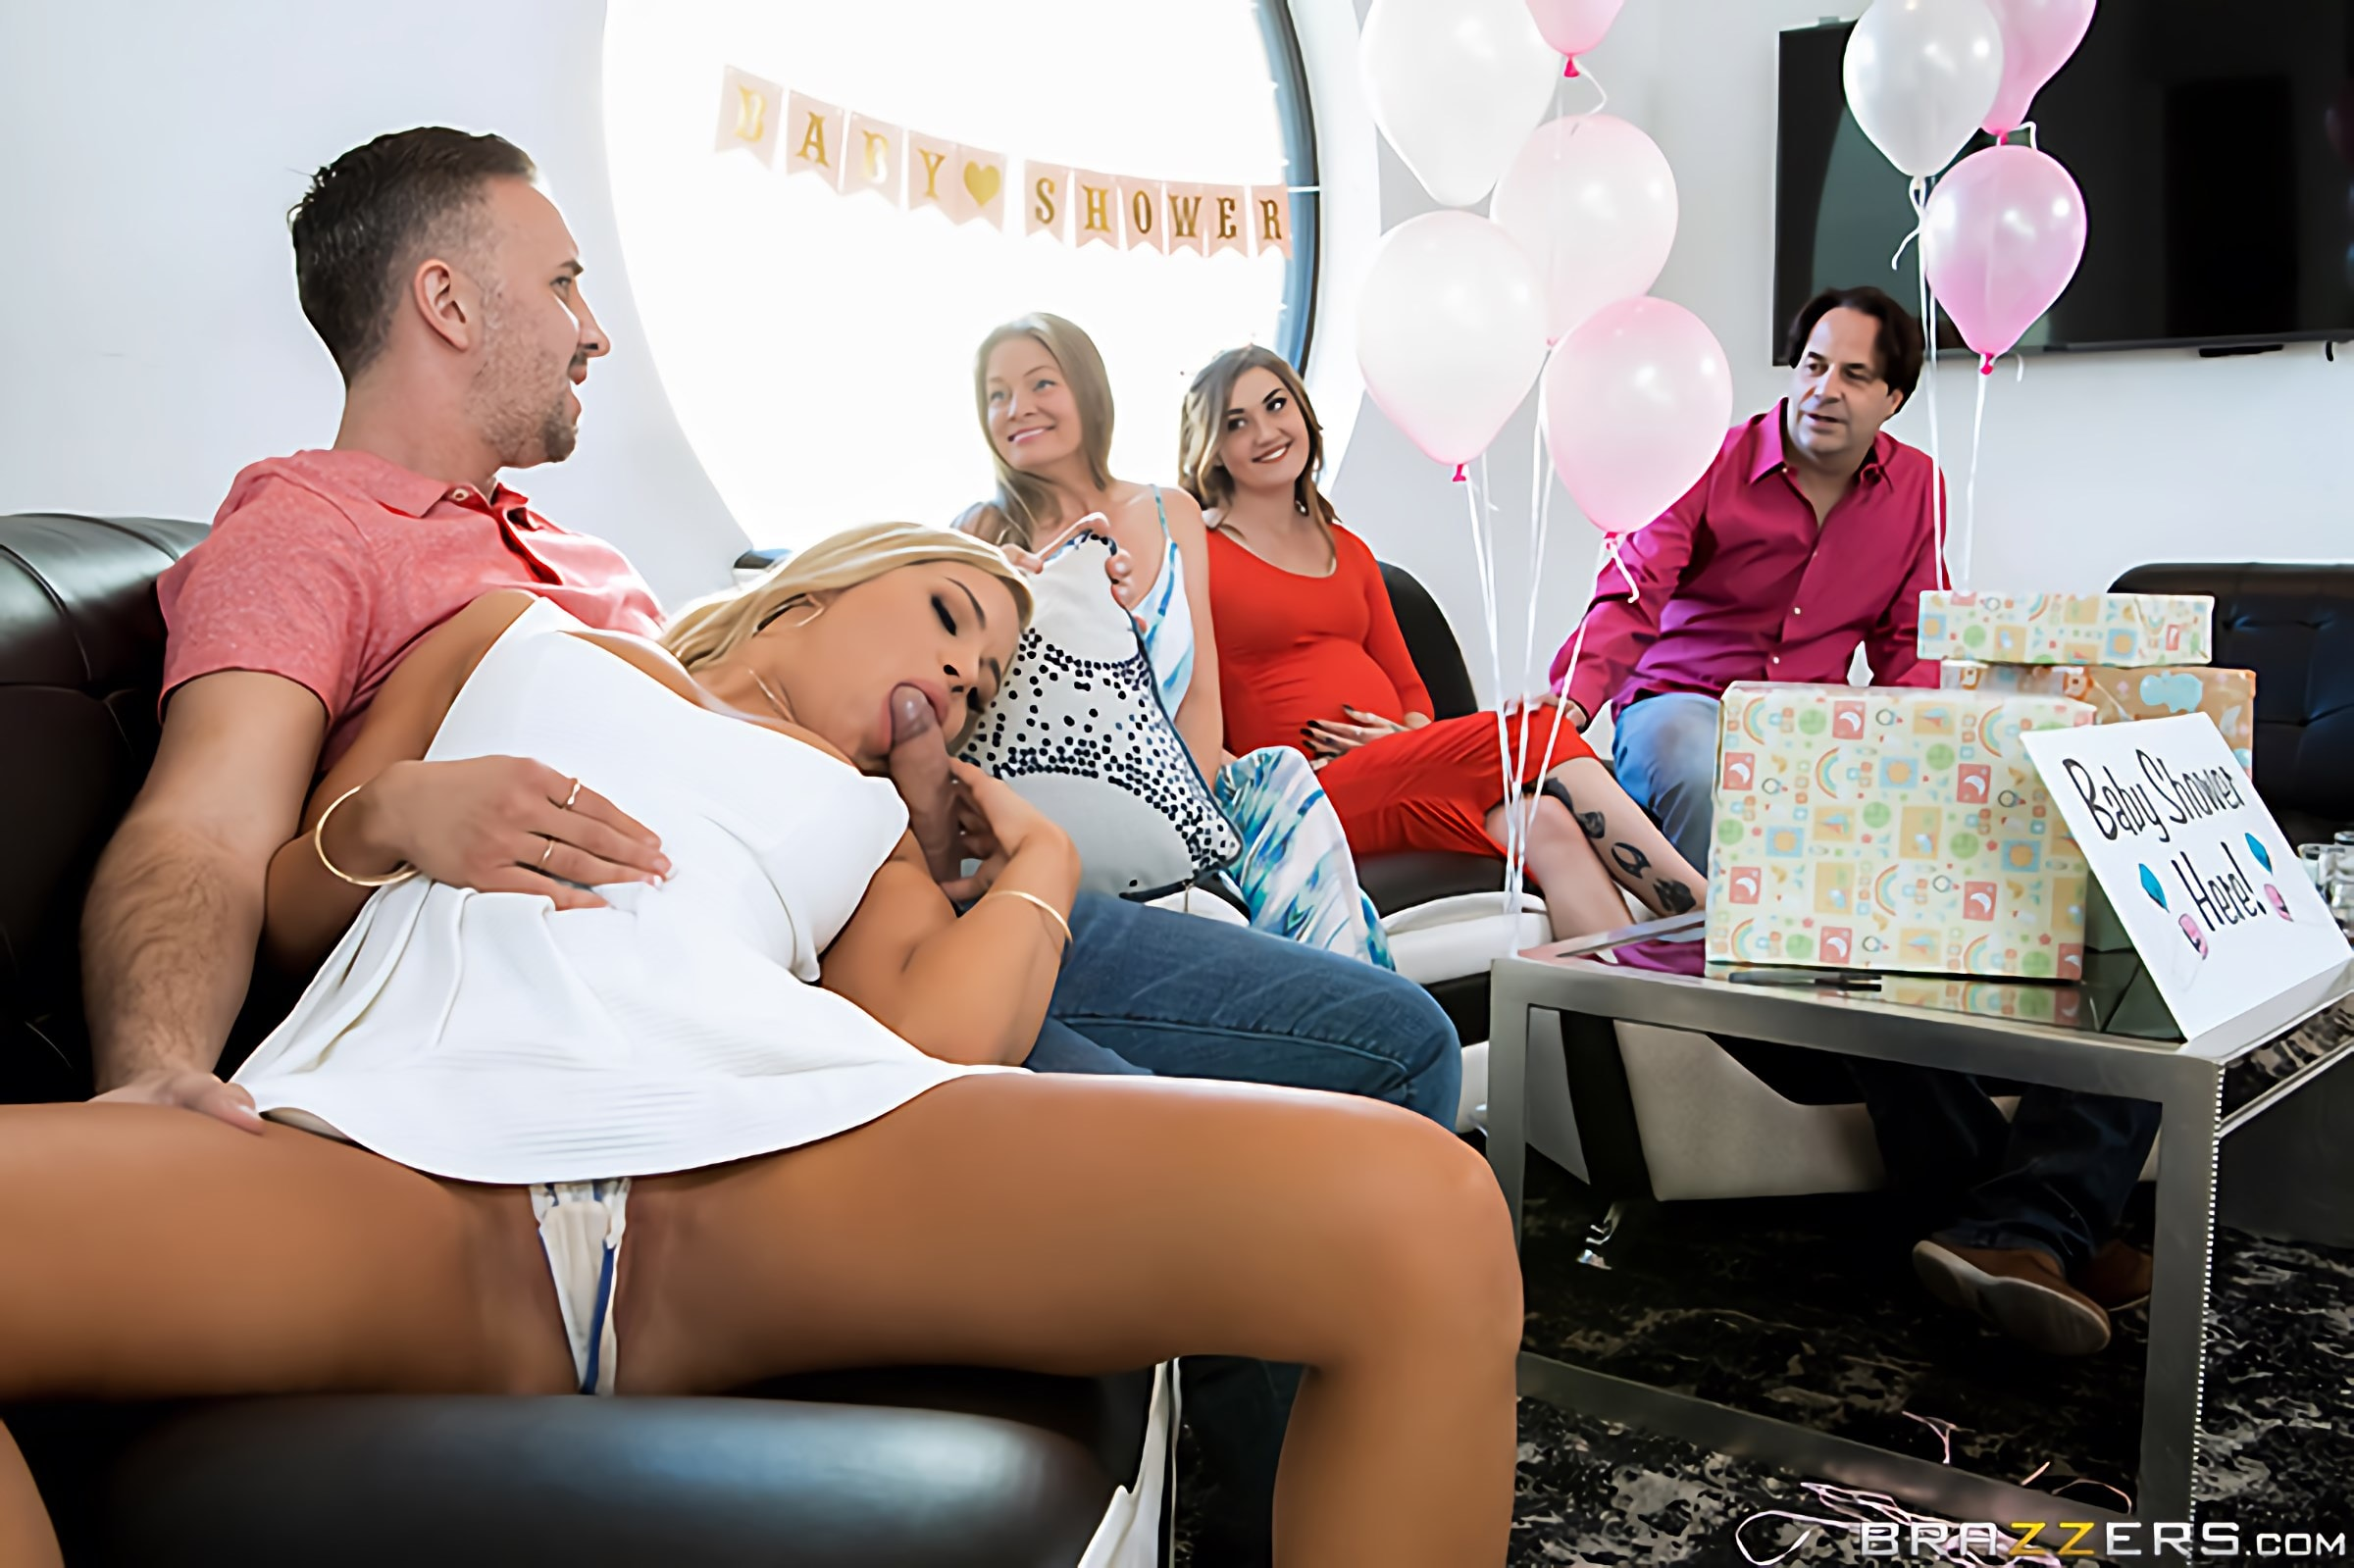 Kendall Kayden - Busted At The Babyshower | Picture (1)